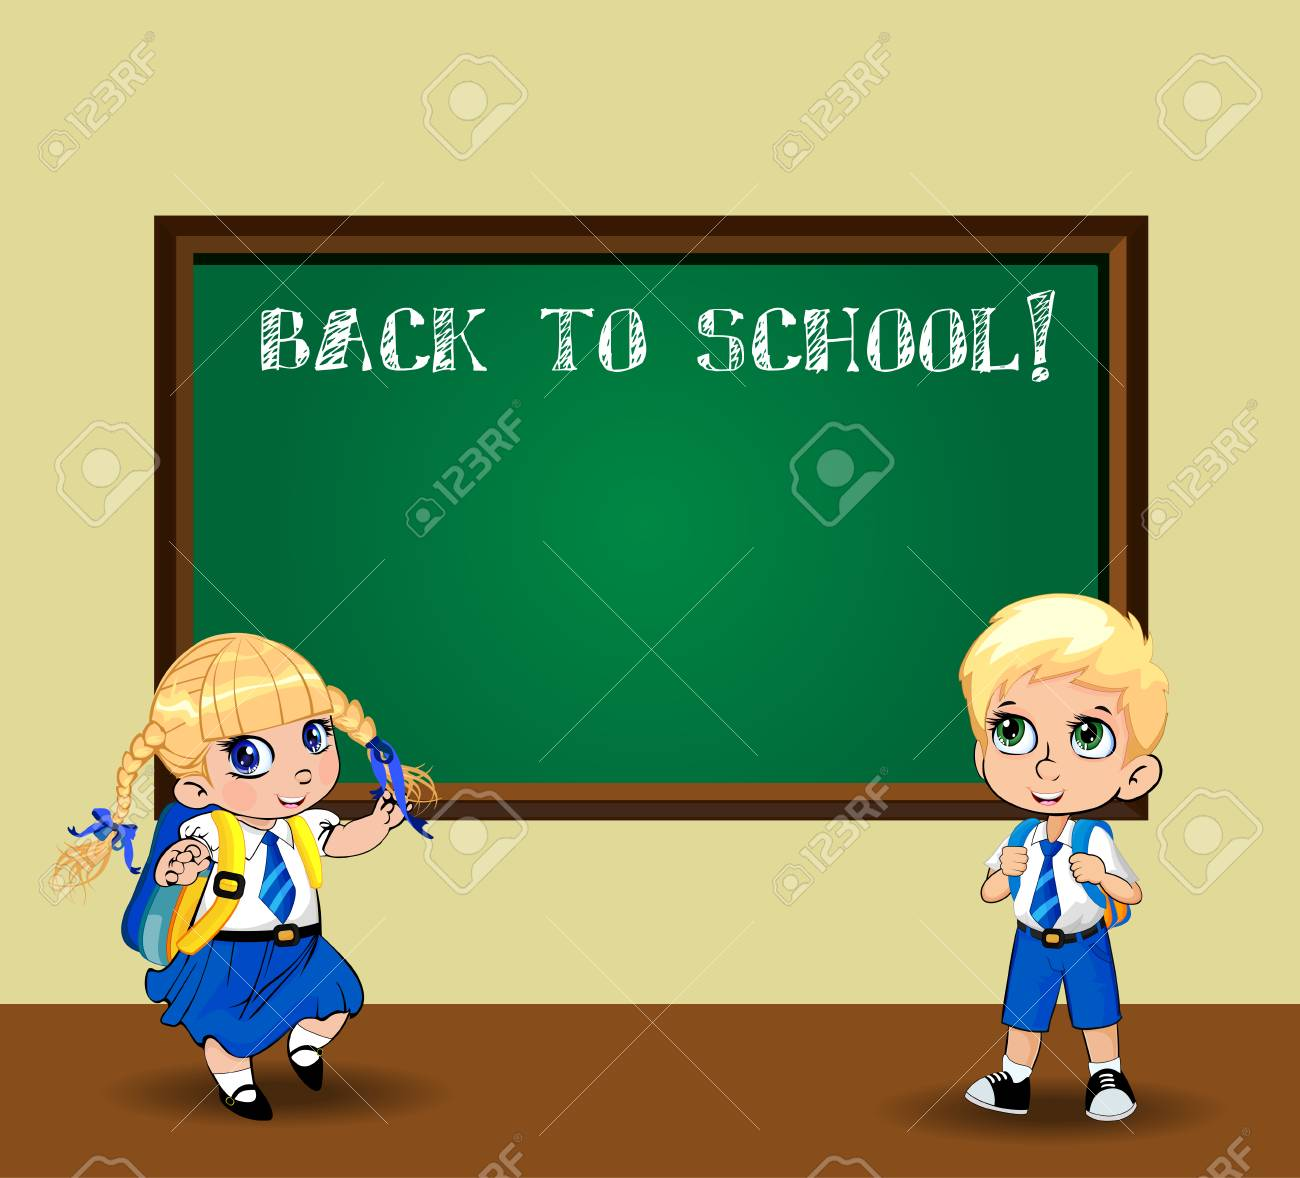 Cute cartoon schoolgirl and schoolboy in uniform with backpacks near chalkboard. Vector illustration, flyer, poster, template, back to school, teacher s day characters concept. Kawaii pupil kids - 112032441